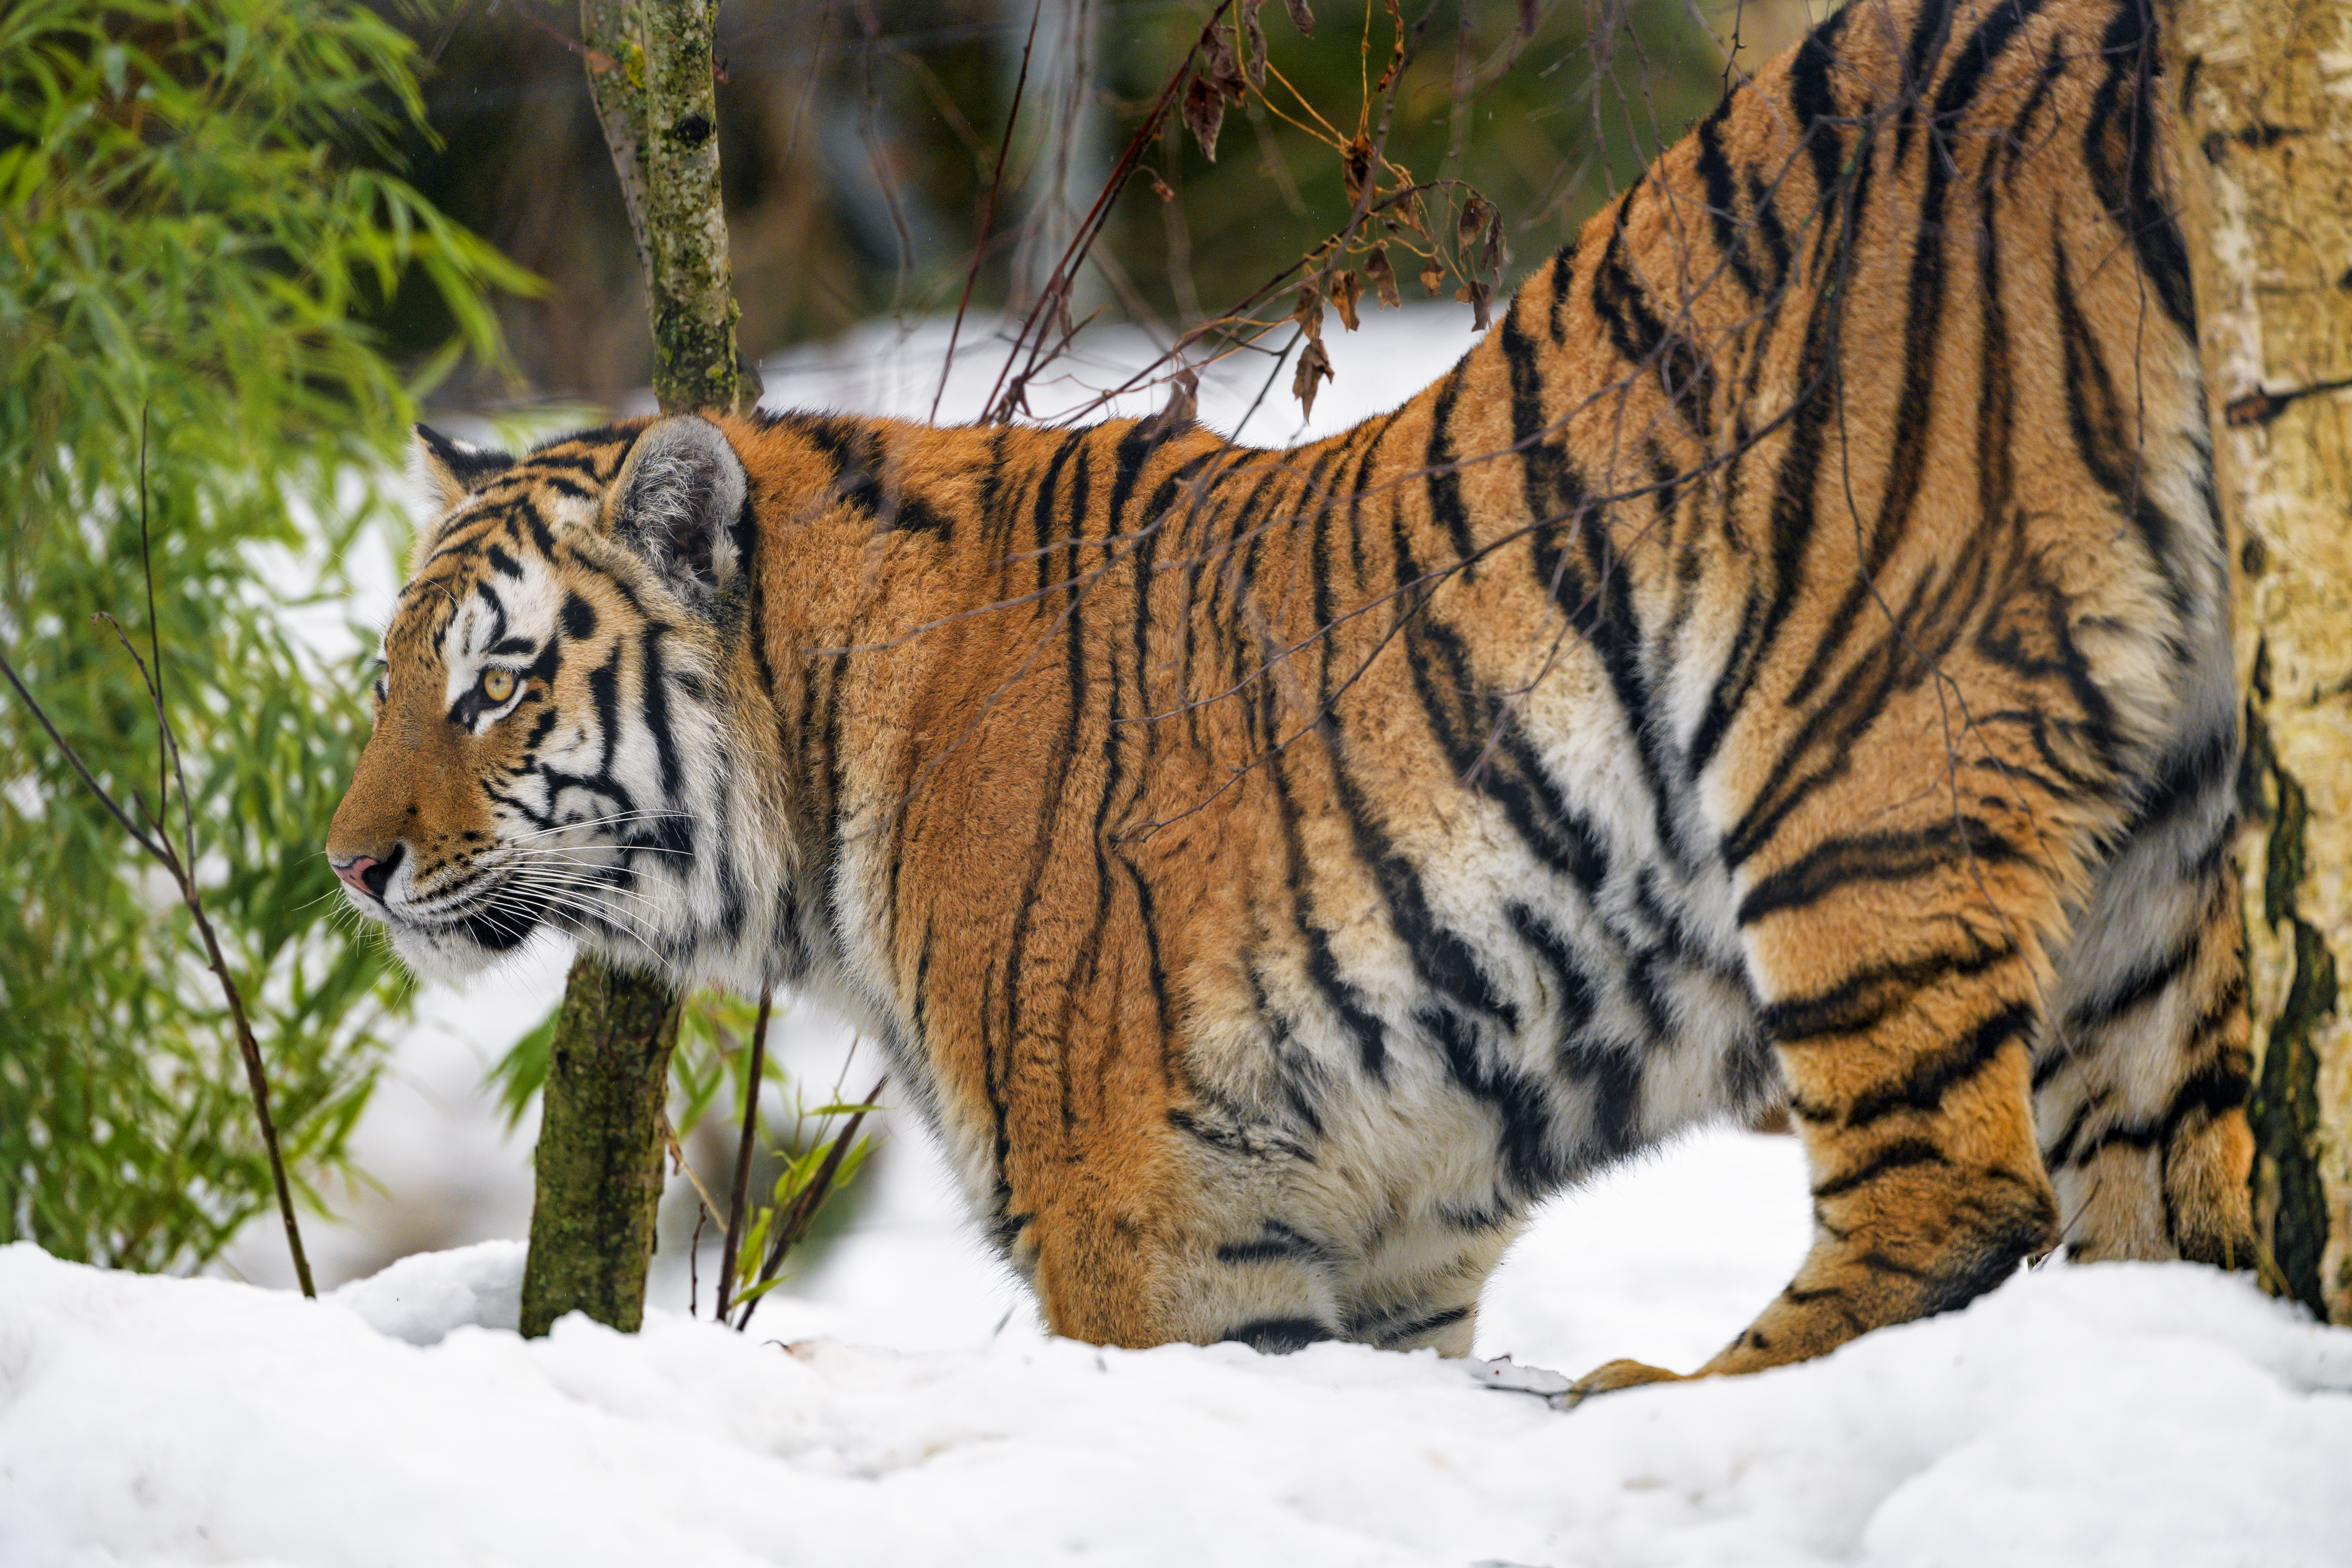 74554 download wallpaper Animals, Tiger, Animal, Predator, Big Cat, Snow, Wildlife screensavers and pictures for free